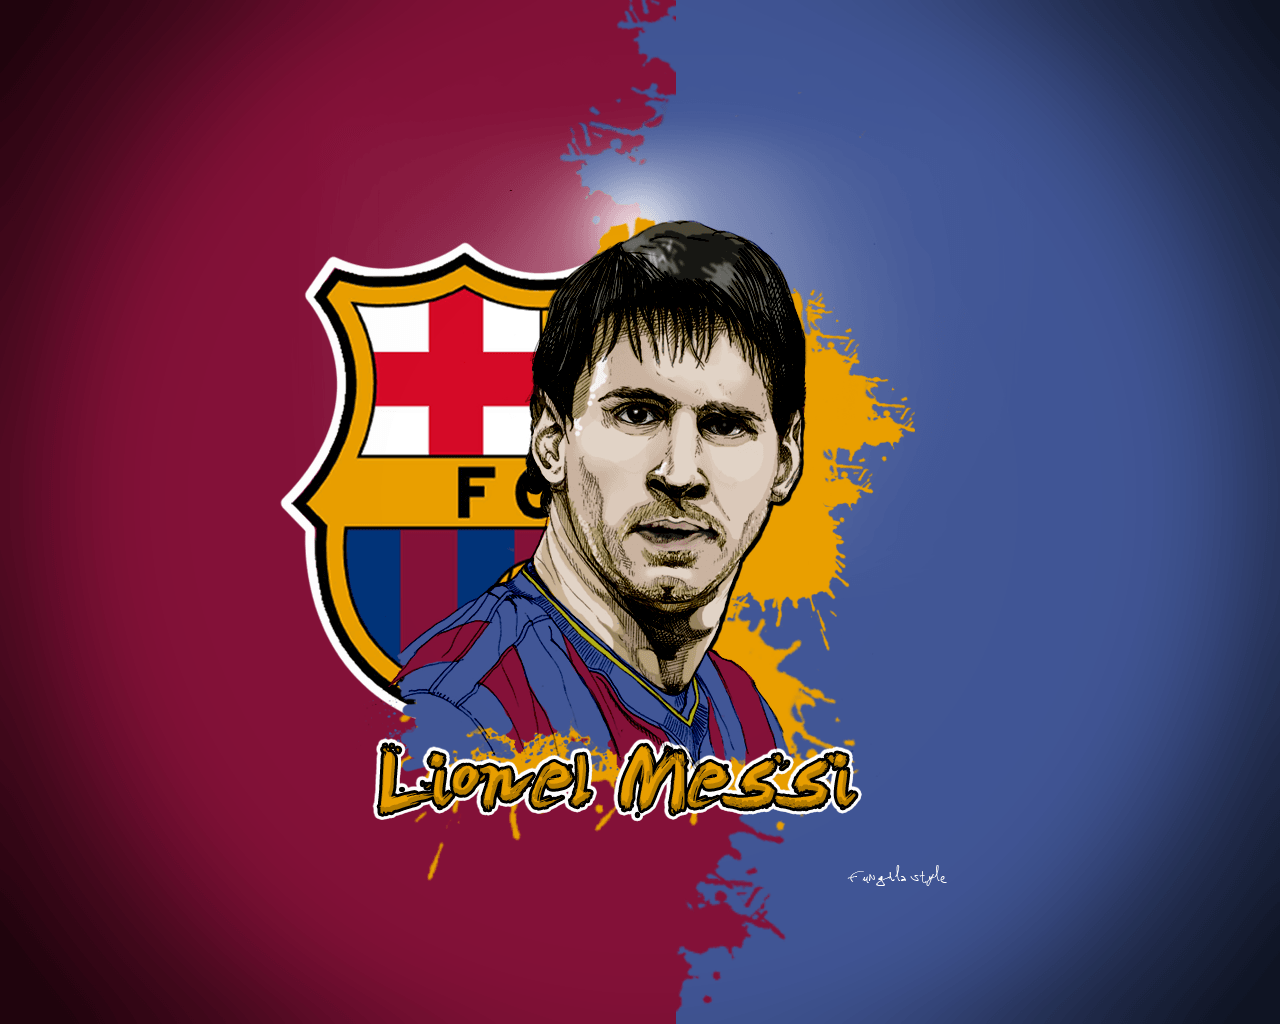 Lionel Messi Wallpapers HD p Free Download for Desktop